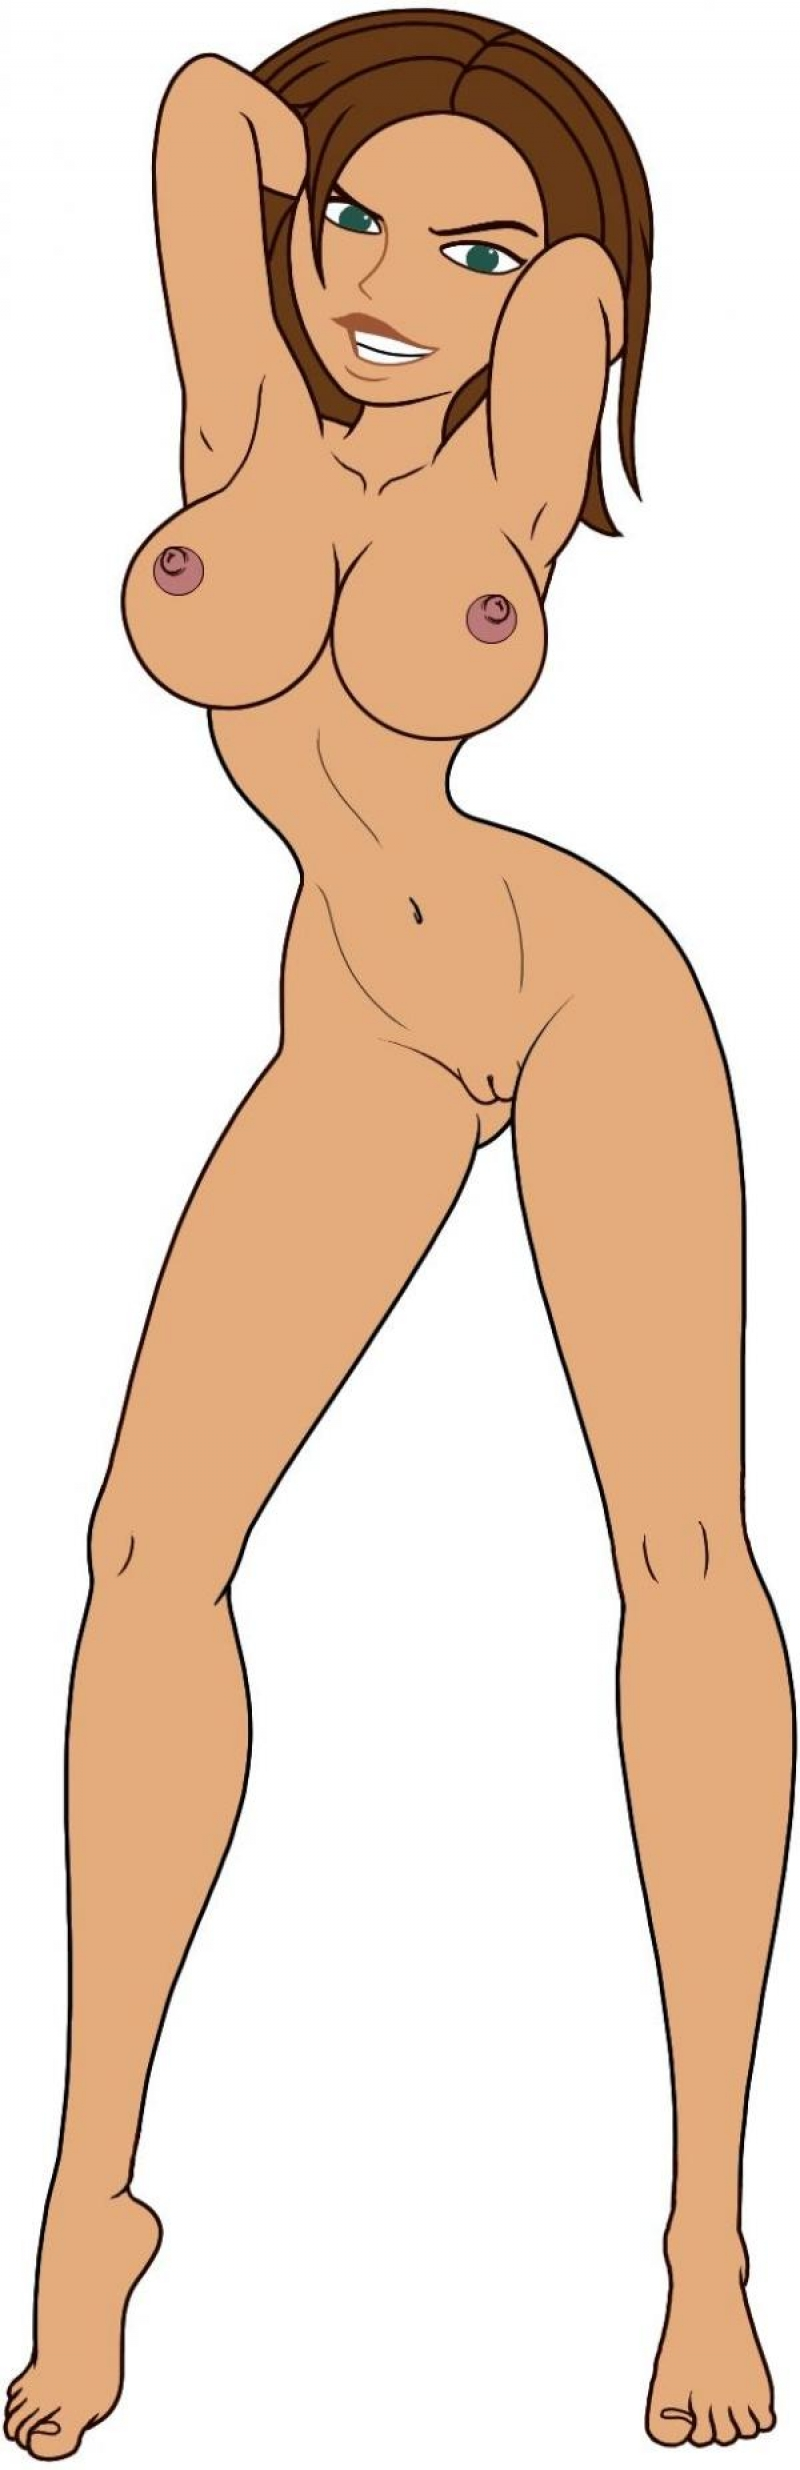 Kim Possible Naked